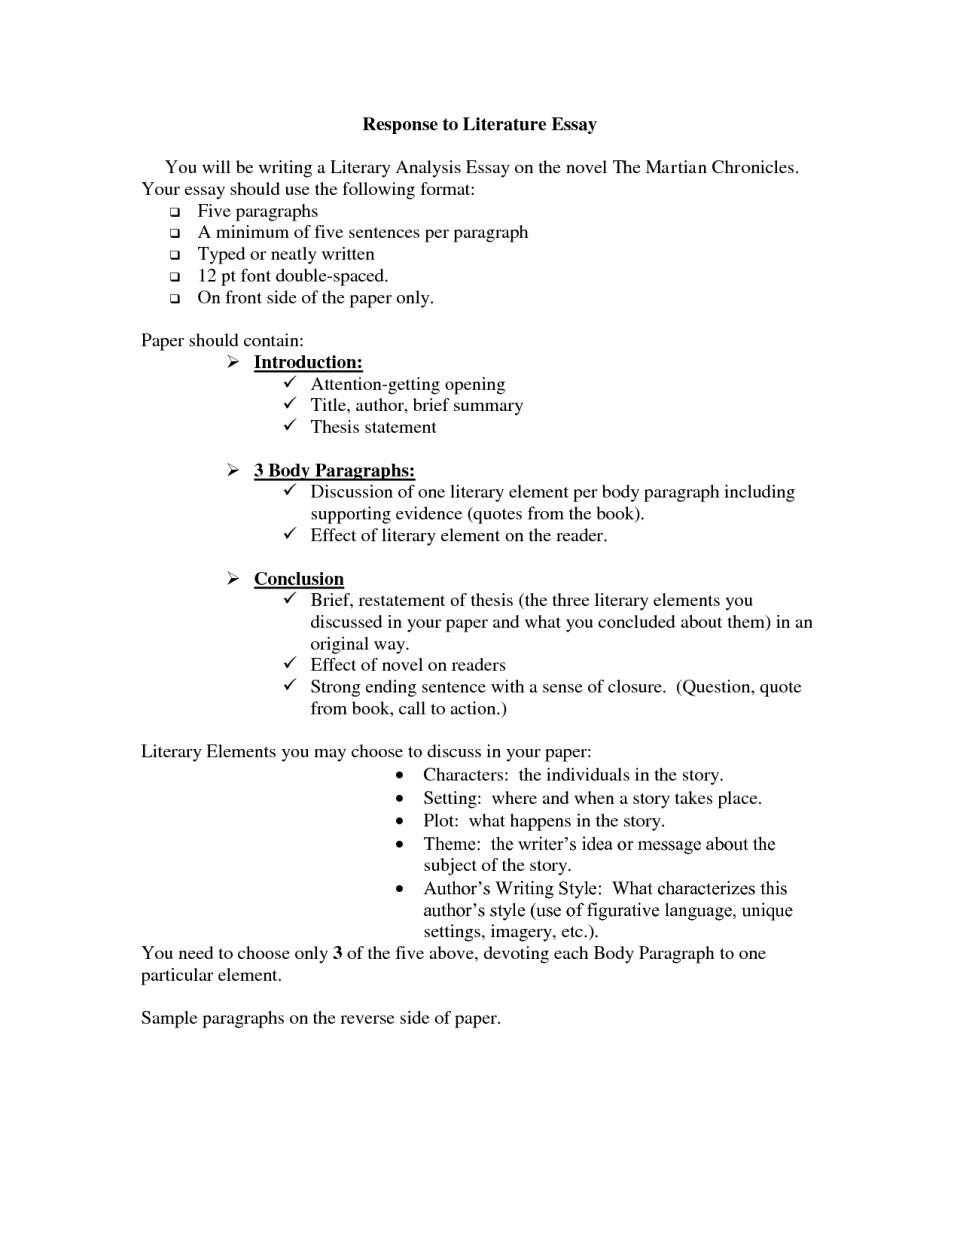 002 Literary Essay Help Responseature Character Sketch Macbeth Introduction College To Example 5th Grade 10th 8th 4th Examples Student Responding Sample 9th High School 6th 3rd How Write Shocking A On 960